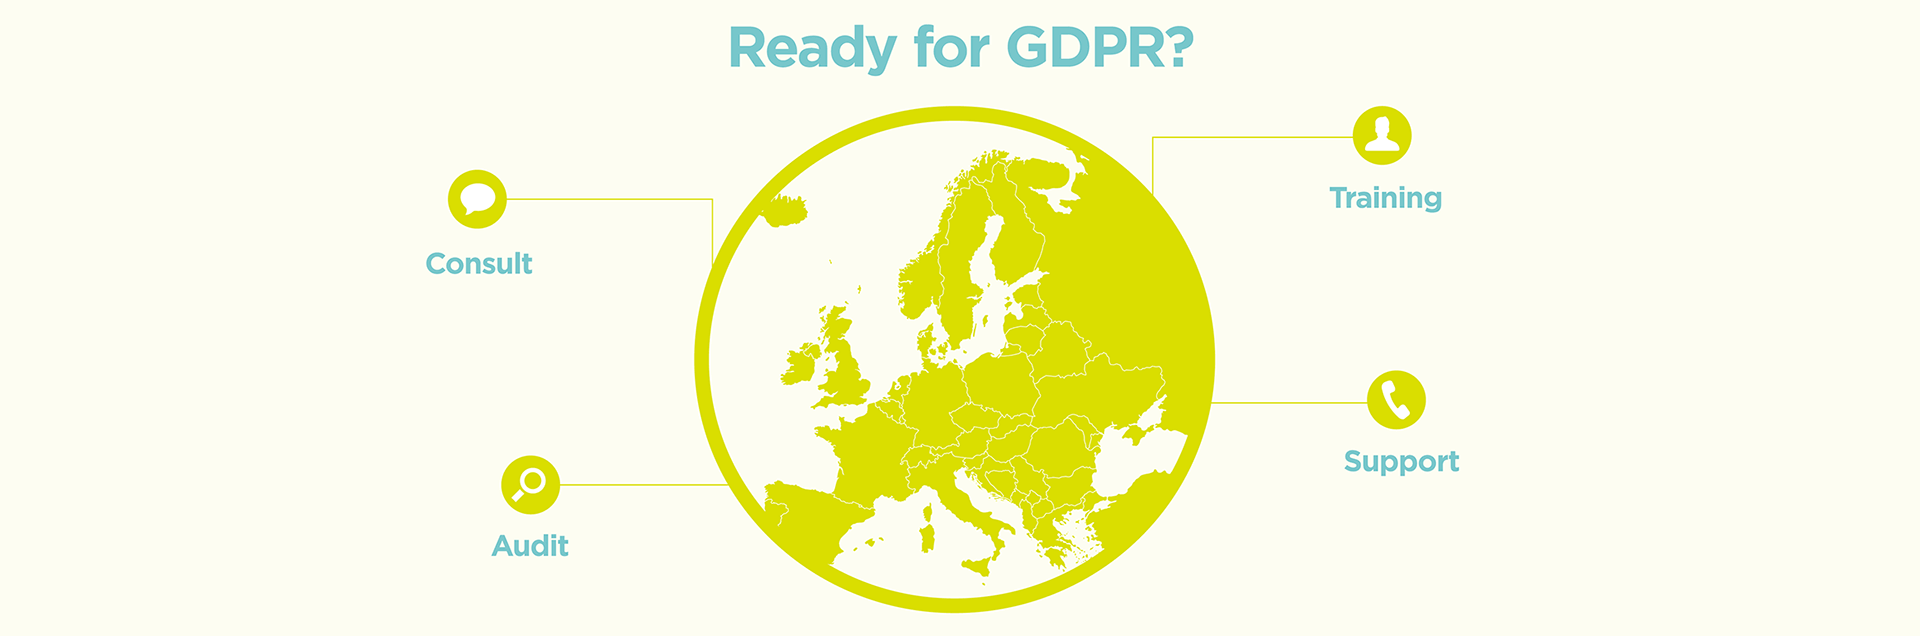 Our sales and marketing data DBS Data your partner in GDPR readiness